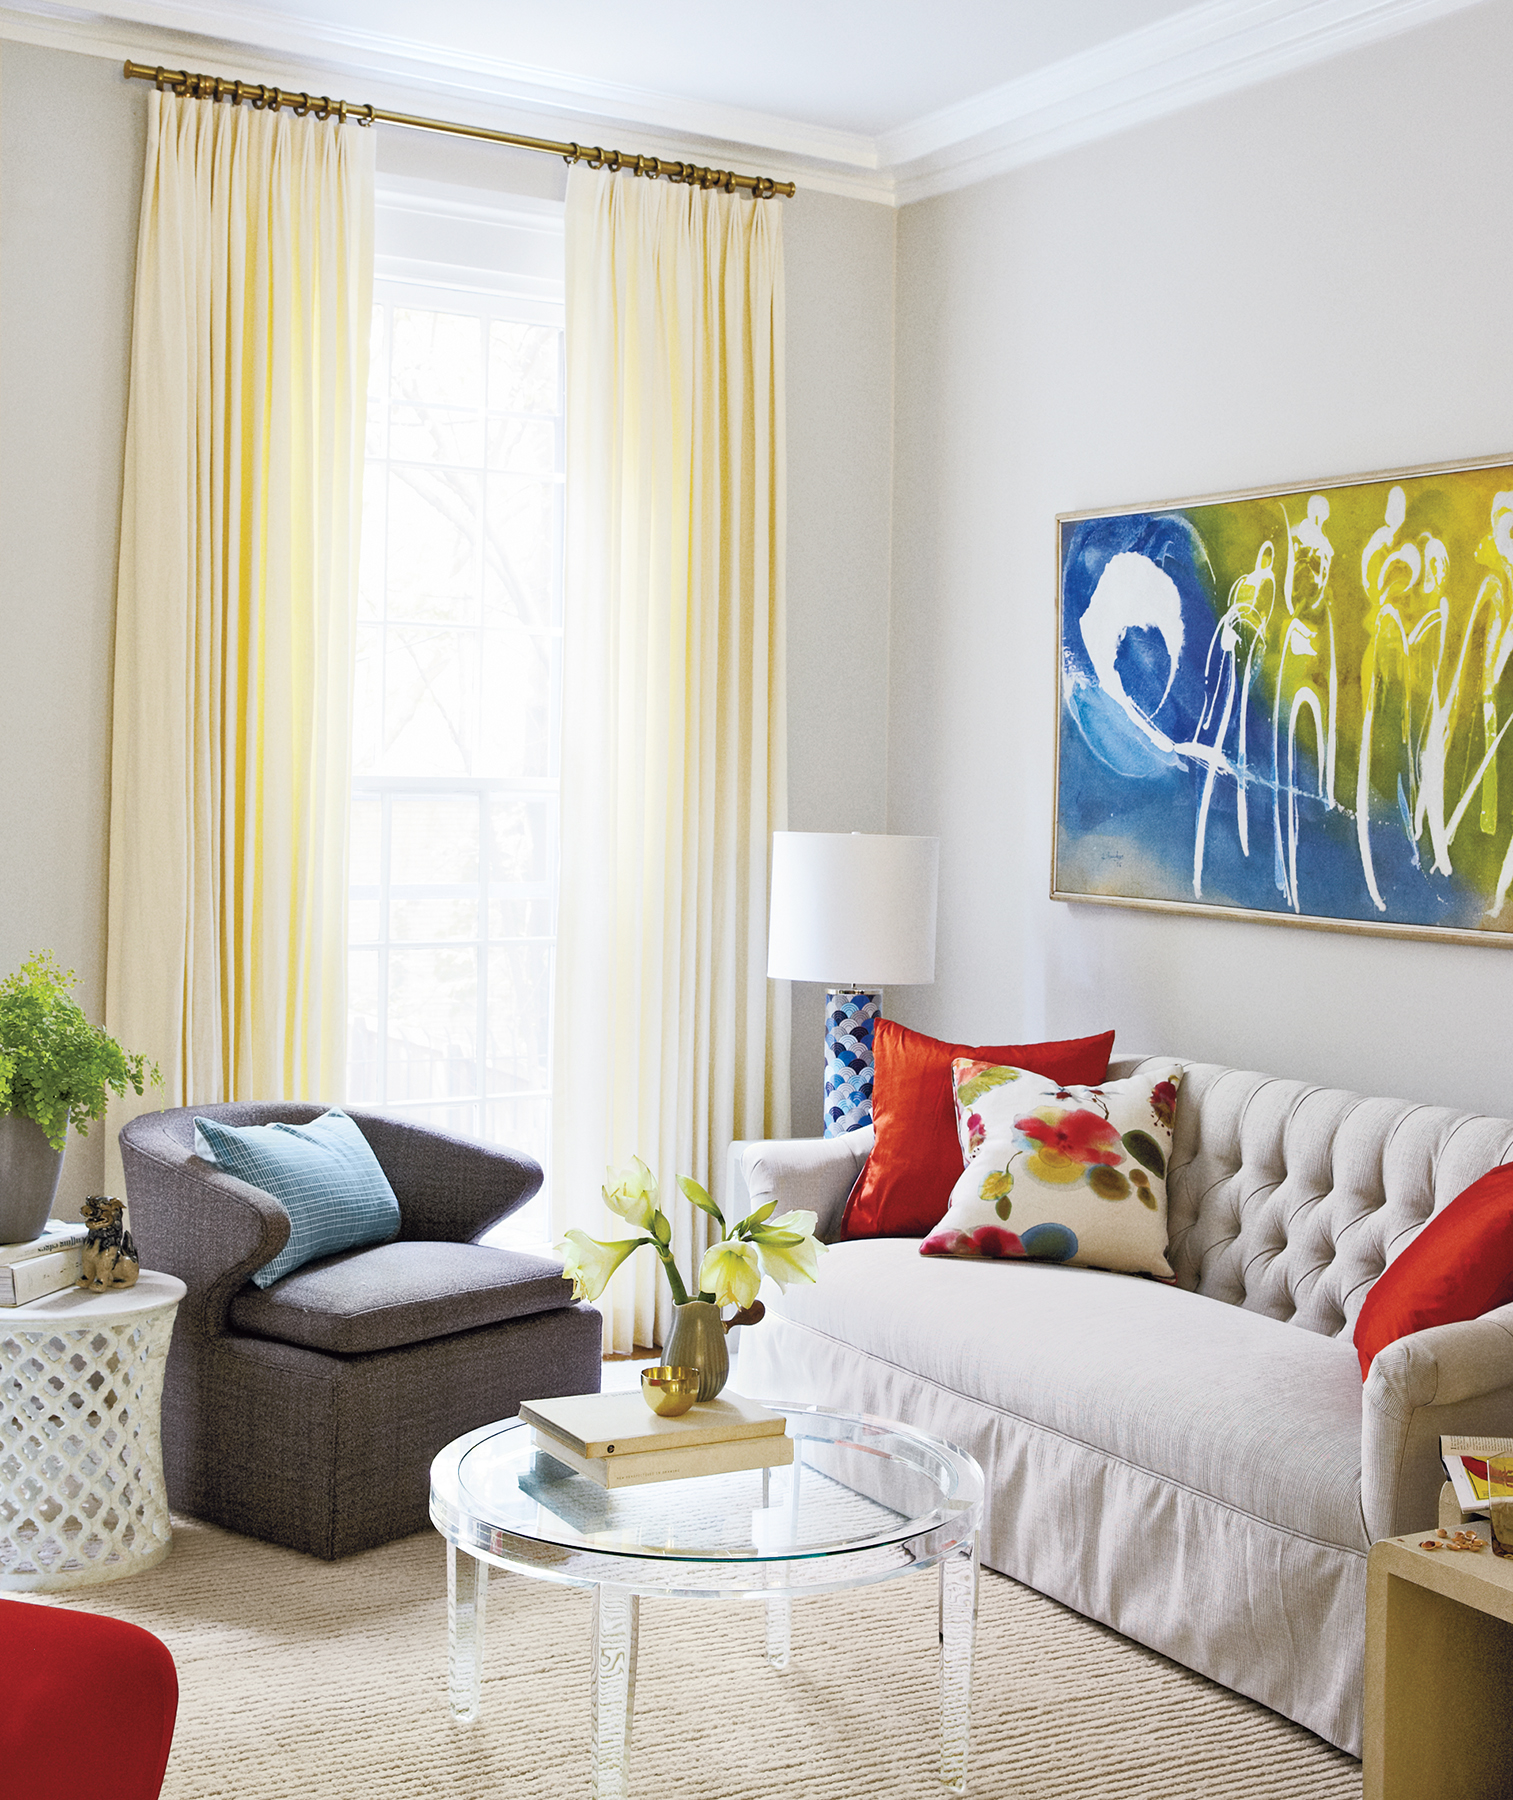 7 Expert Home Staging Tips You Can Do Yourself | Real Simple on home selling tips, home stager, insurance tips, home color tips, home organizing, nate berkus painting tips, home maintenance tips, home management tips, landscaping tips, staging a home, home packing tips, real estate staging, home staging business, real estate tips, home real estate, home security tips, home decor tips, home black and white, home inspection tips, home audio tips, home remodeling tips, home tips and tricks, home construction tips, vacant home staging, home survival tips,